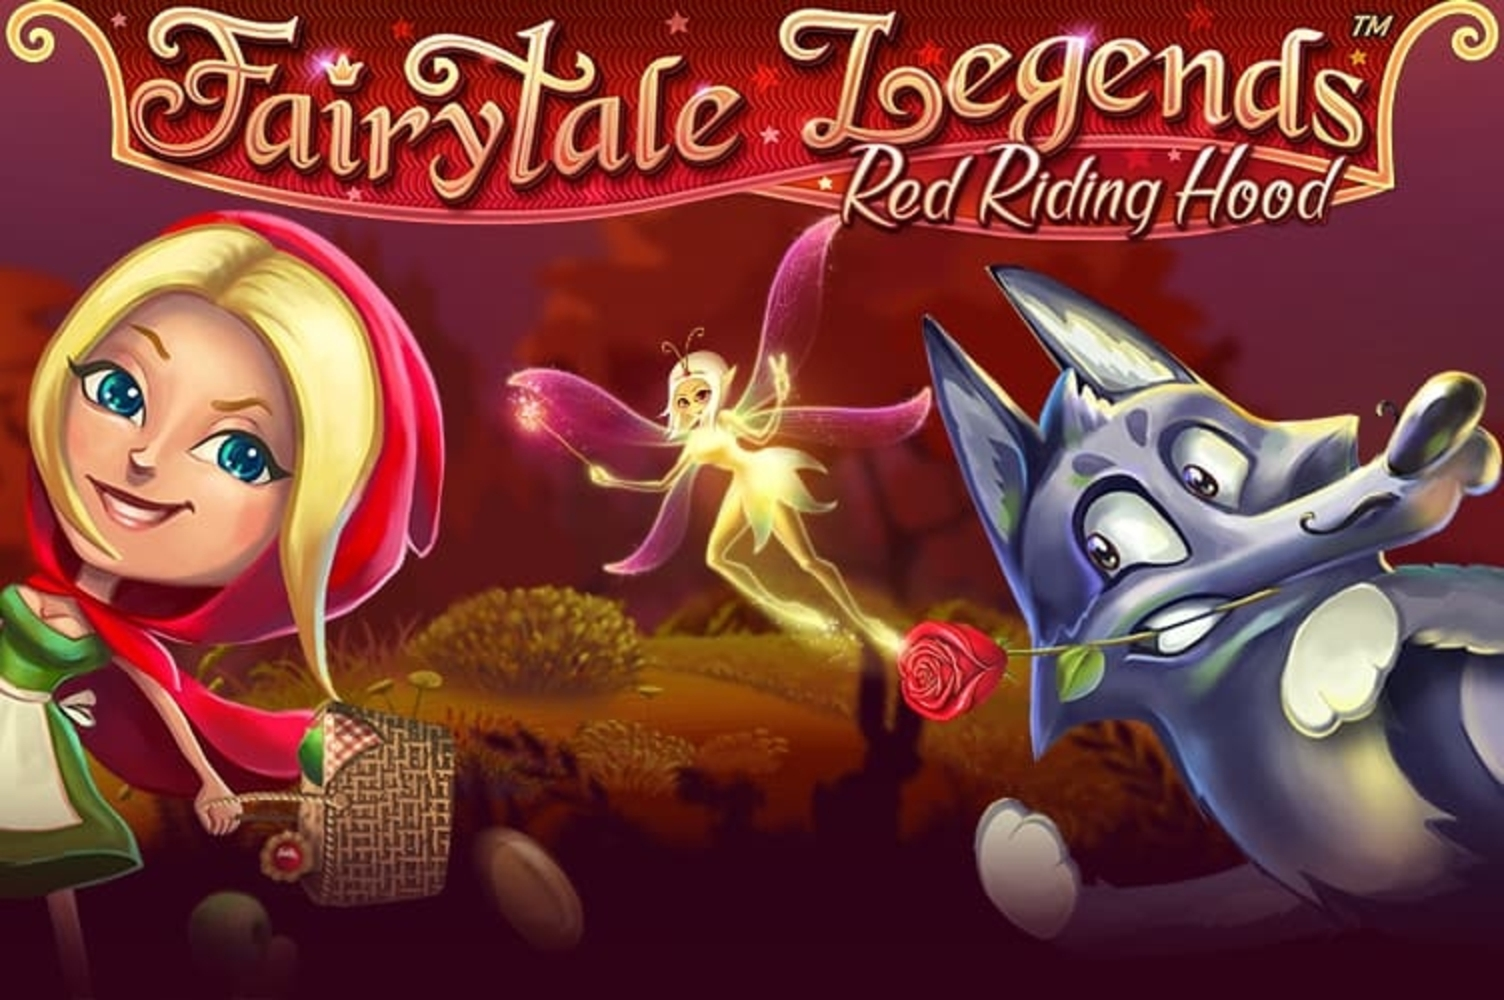 The Fairytale Legends: Red Riding Hood Online Slot Demo Game by NetEnt